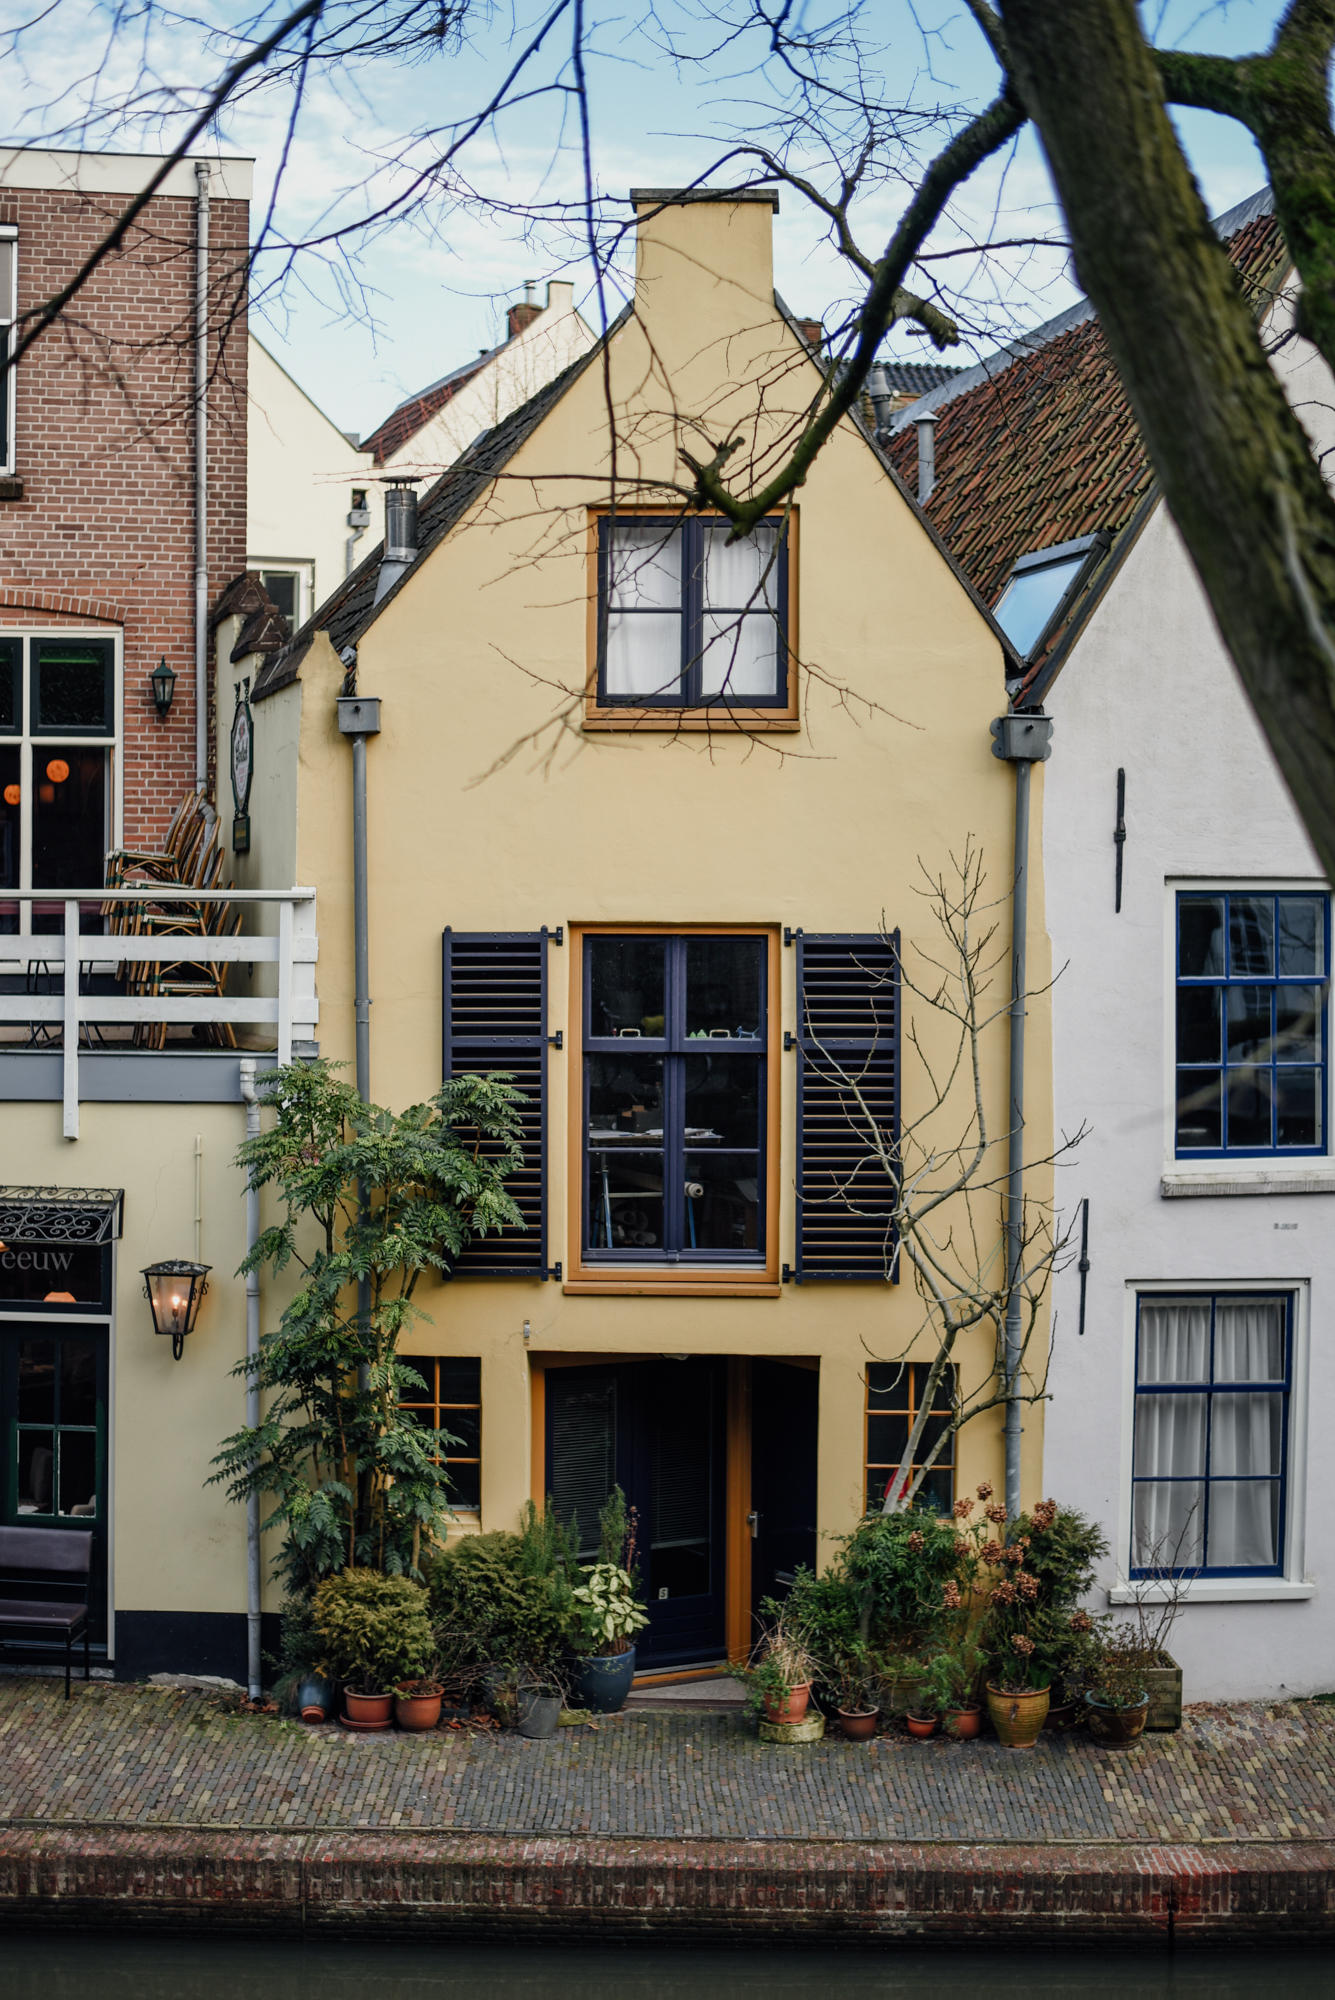 Canal house in Utrecht The Netherlands